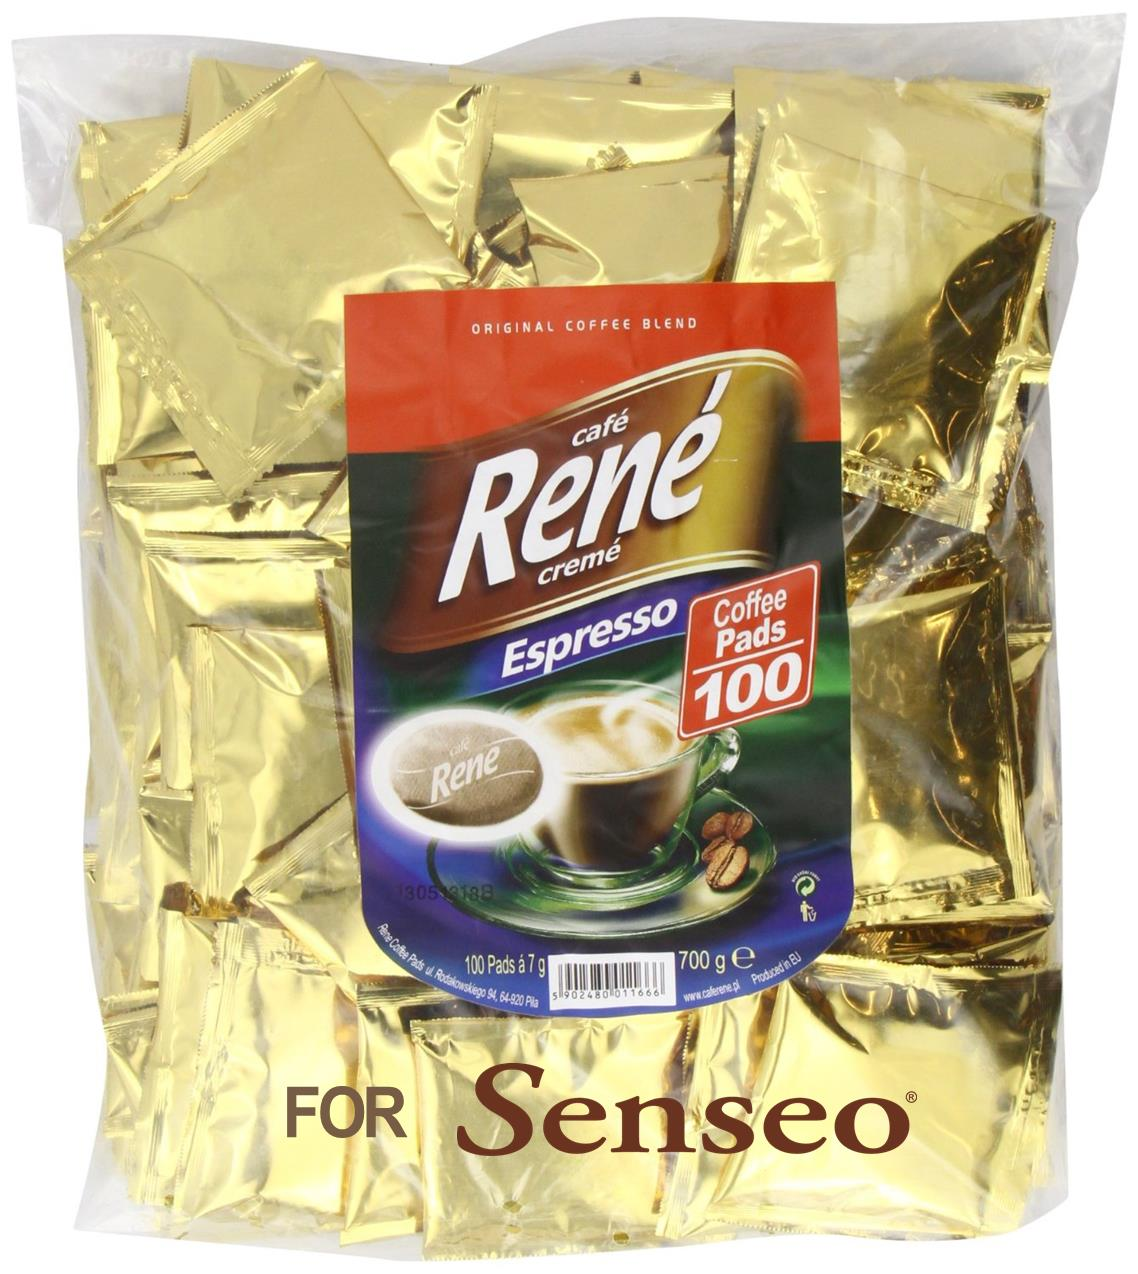 philips senseo 100 x caf rene cr me espresso coffee pads bags pods ebay. Black Bedroom Furniture Sets. Home Design Ideas